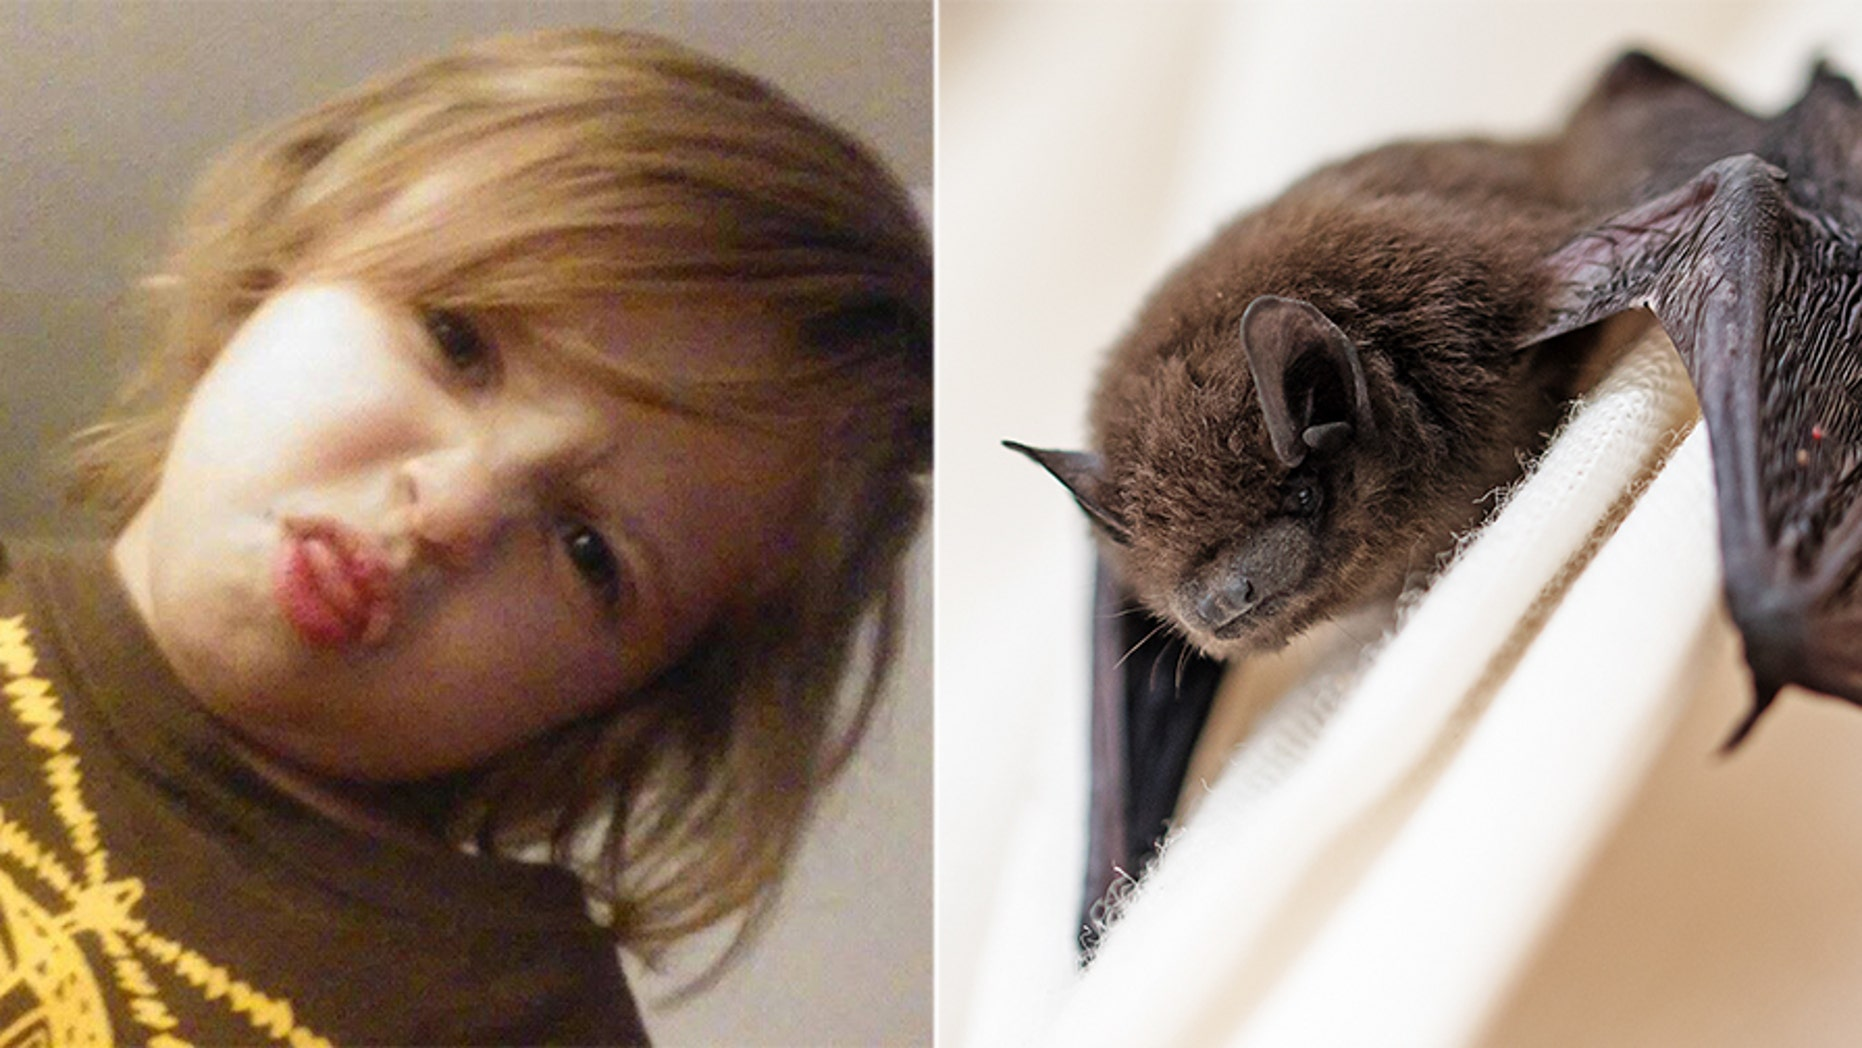 Ryker Roque, 6, died at a hospital in Orlando Sunday after contracting rabies from a sick bat.